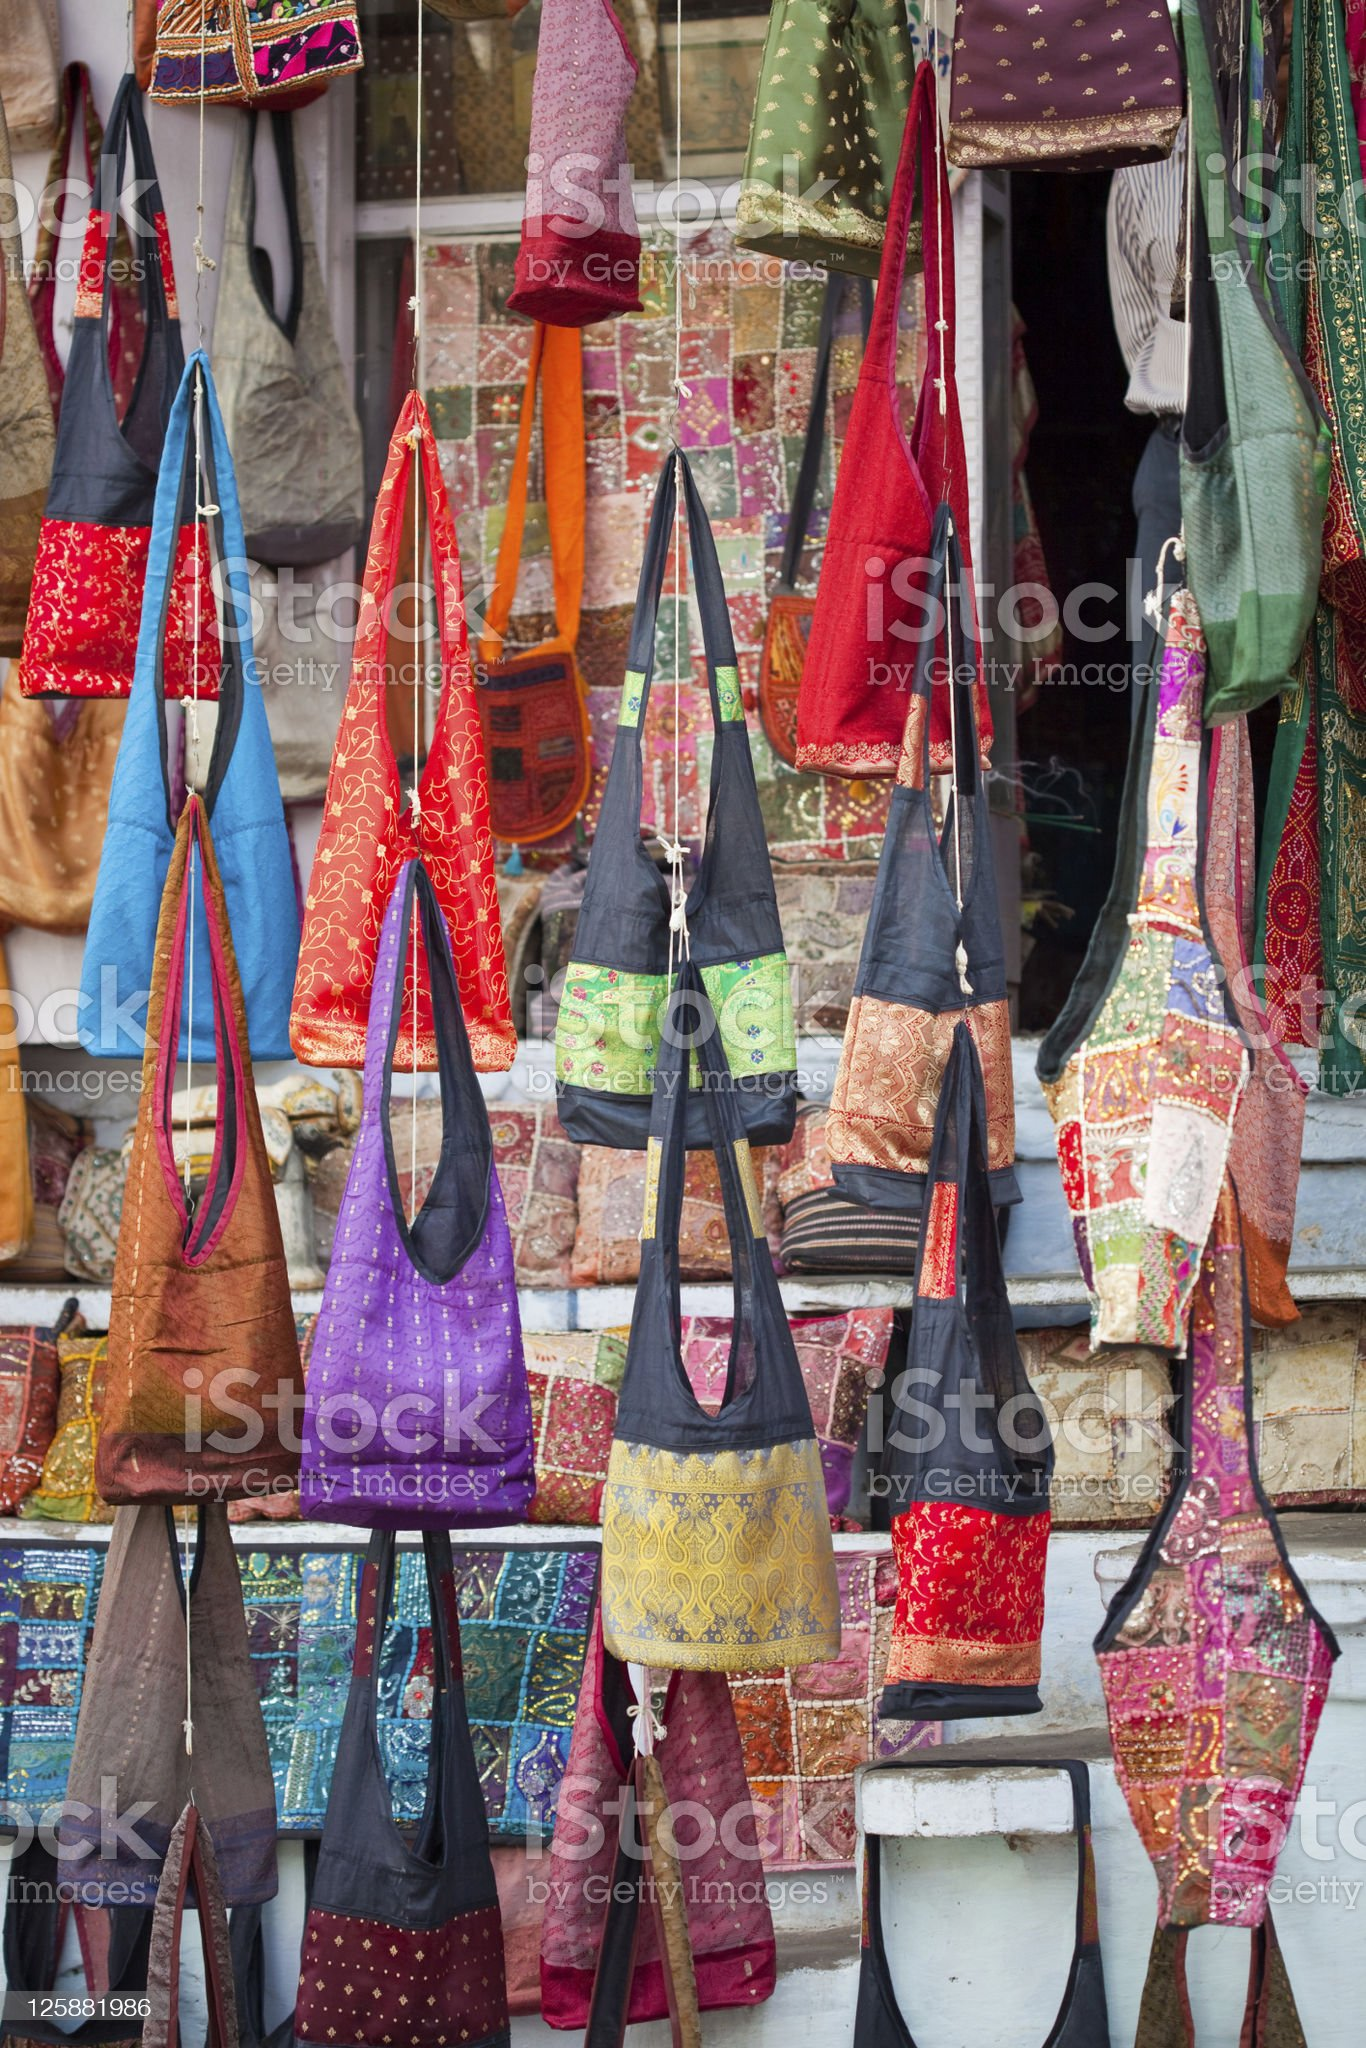 Purses From Rajasthan, India royalty-free stock photo